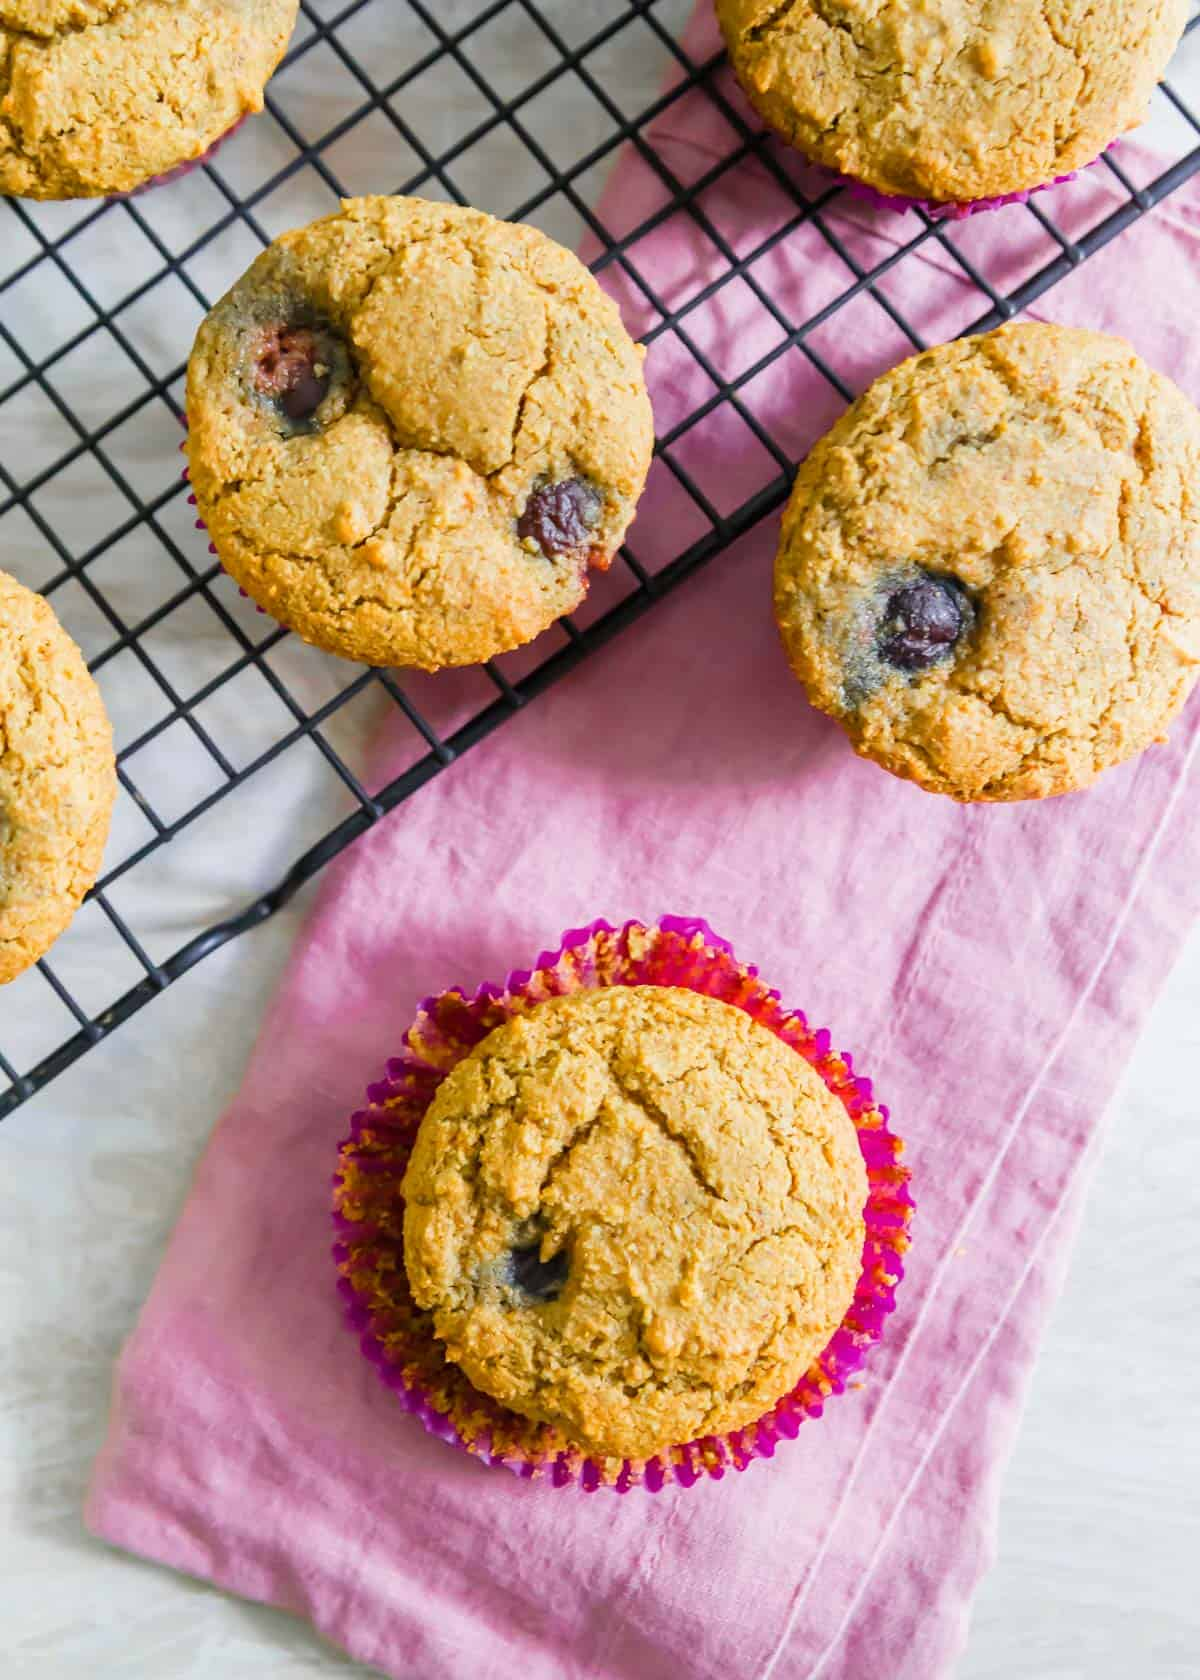 The chewy texture you love from a corn muffin in an easy vegan and gluten-free version filled with cherries!